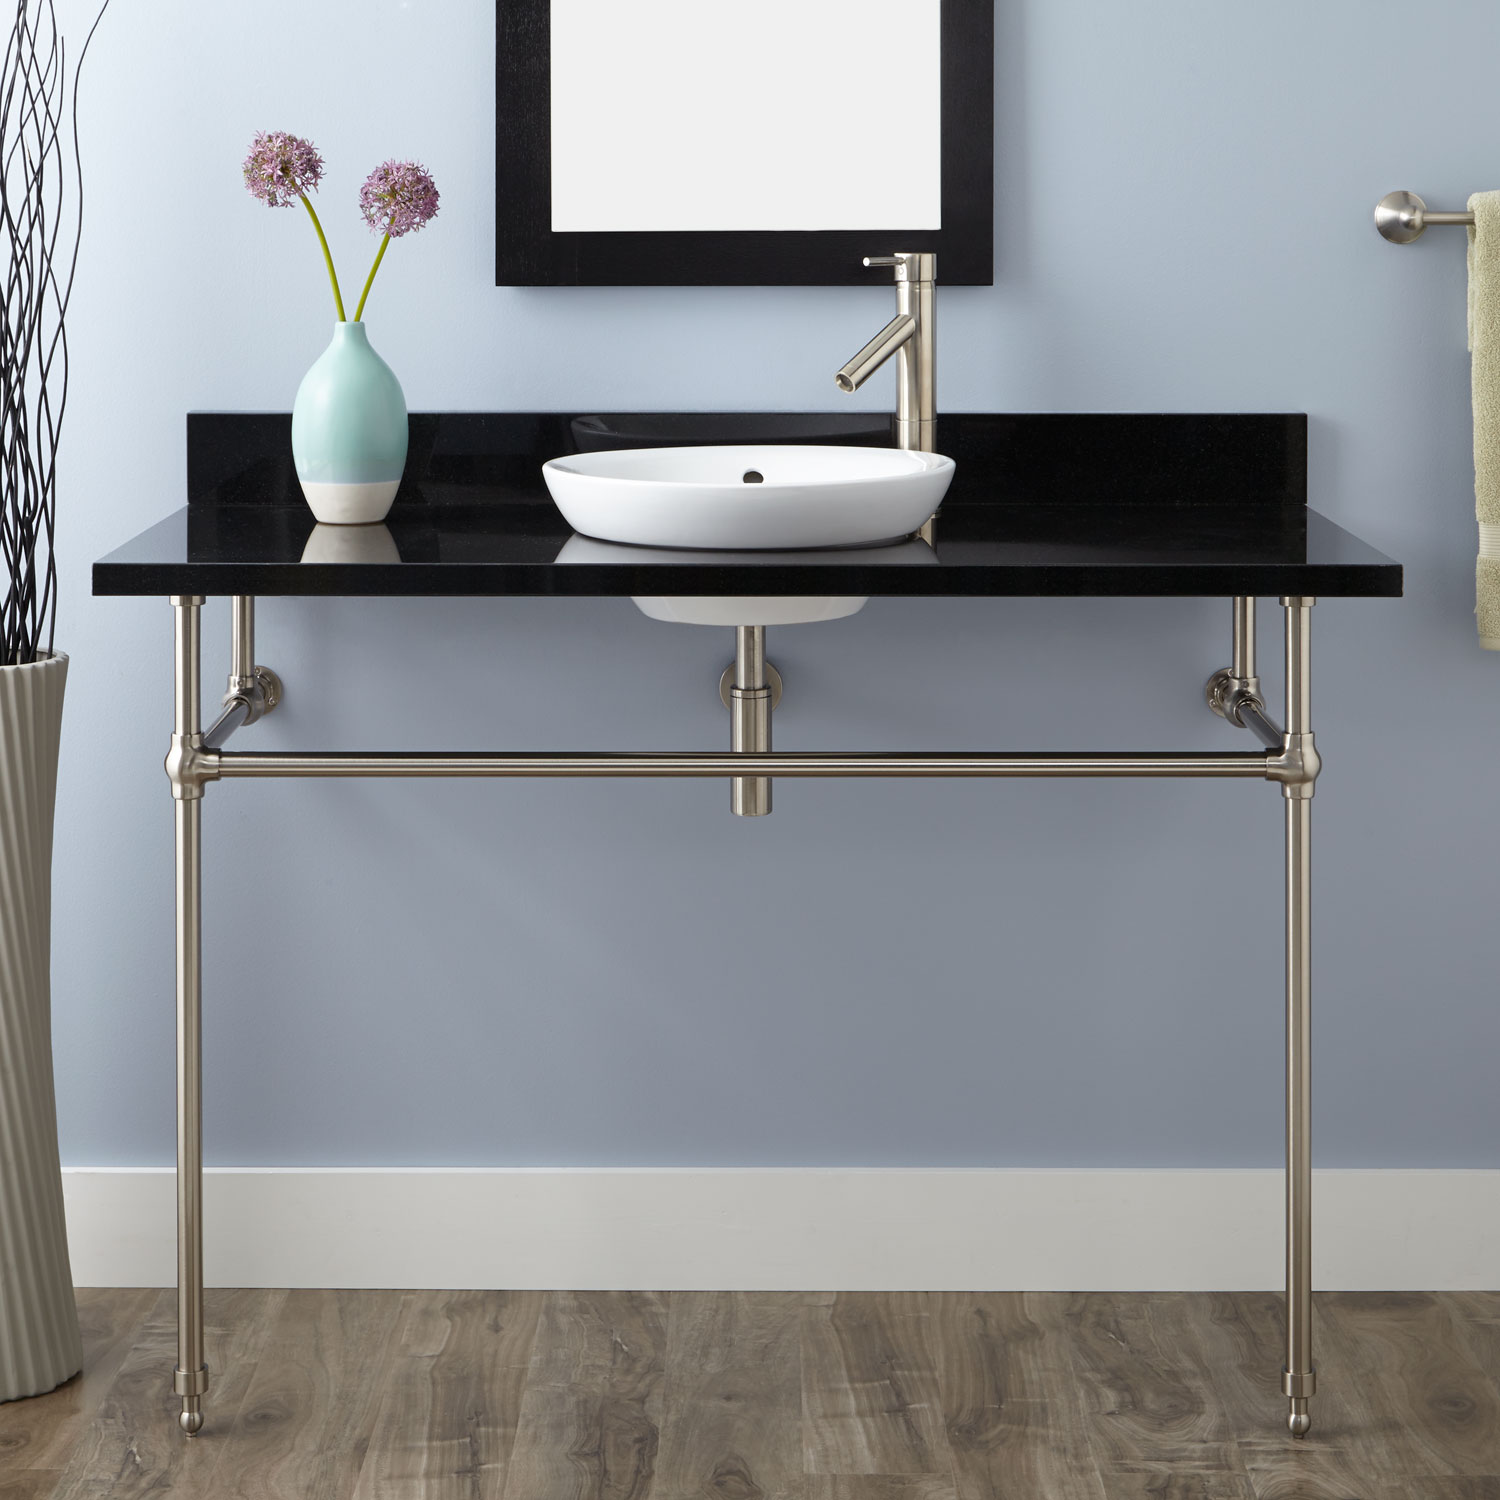 Art Deco console with semi-recessed sink